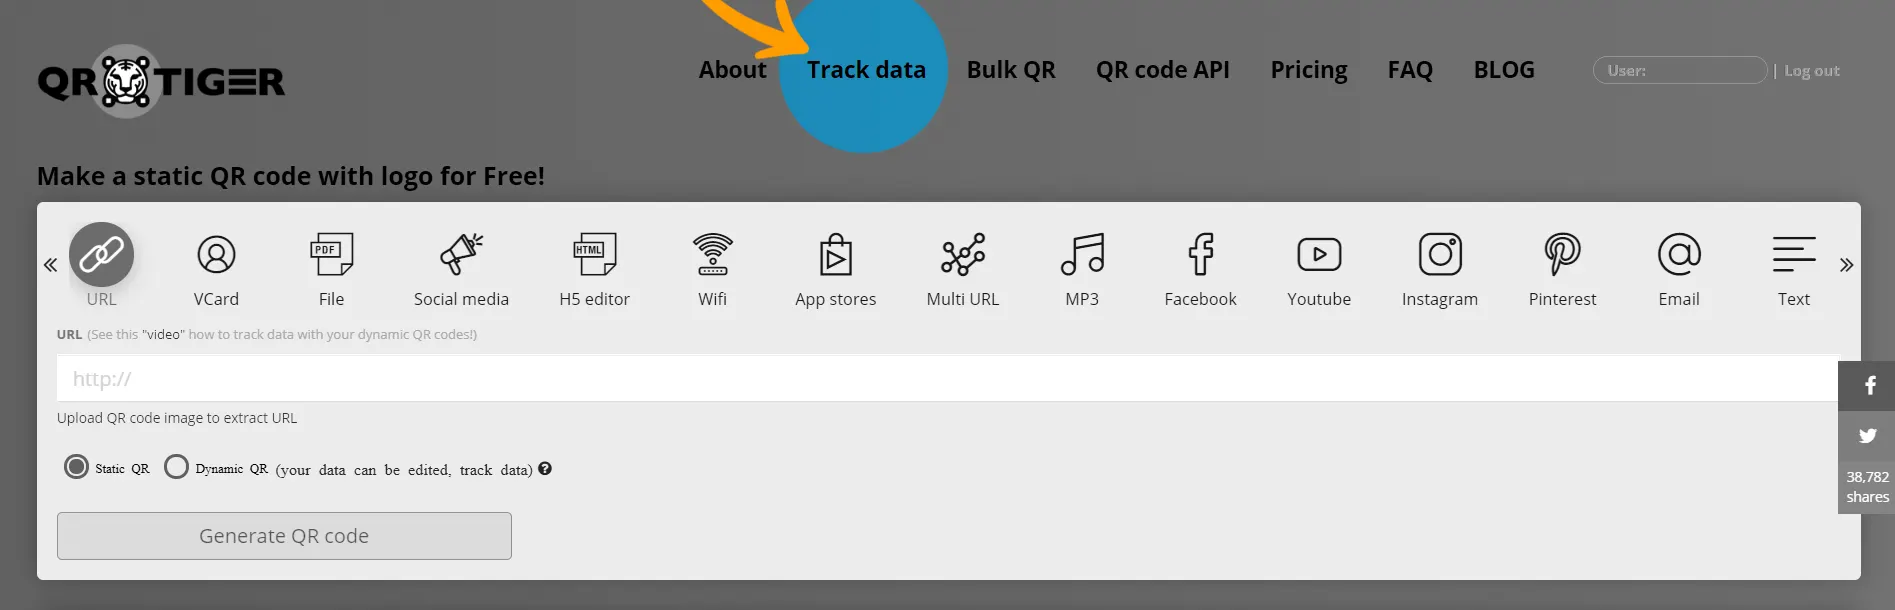 editable qr code and track data